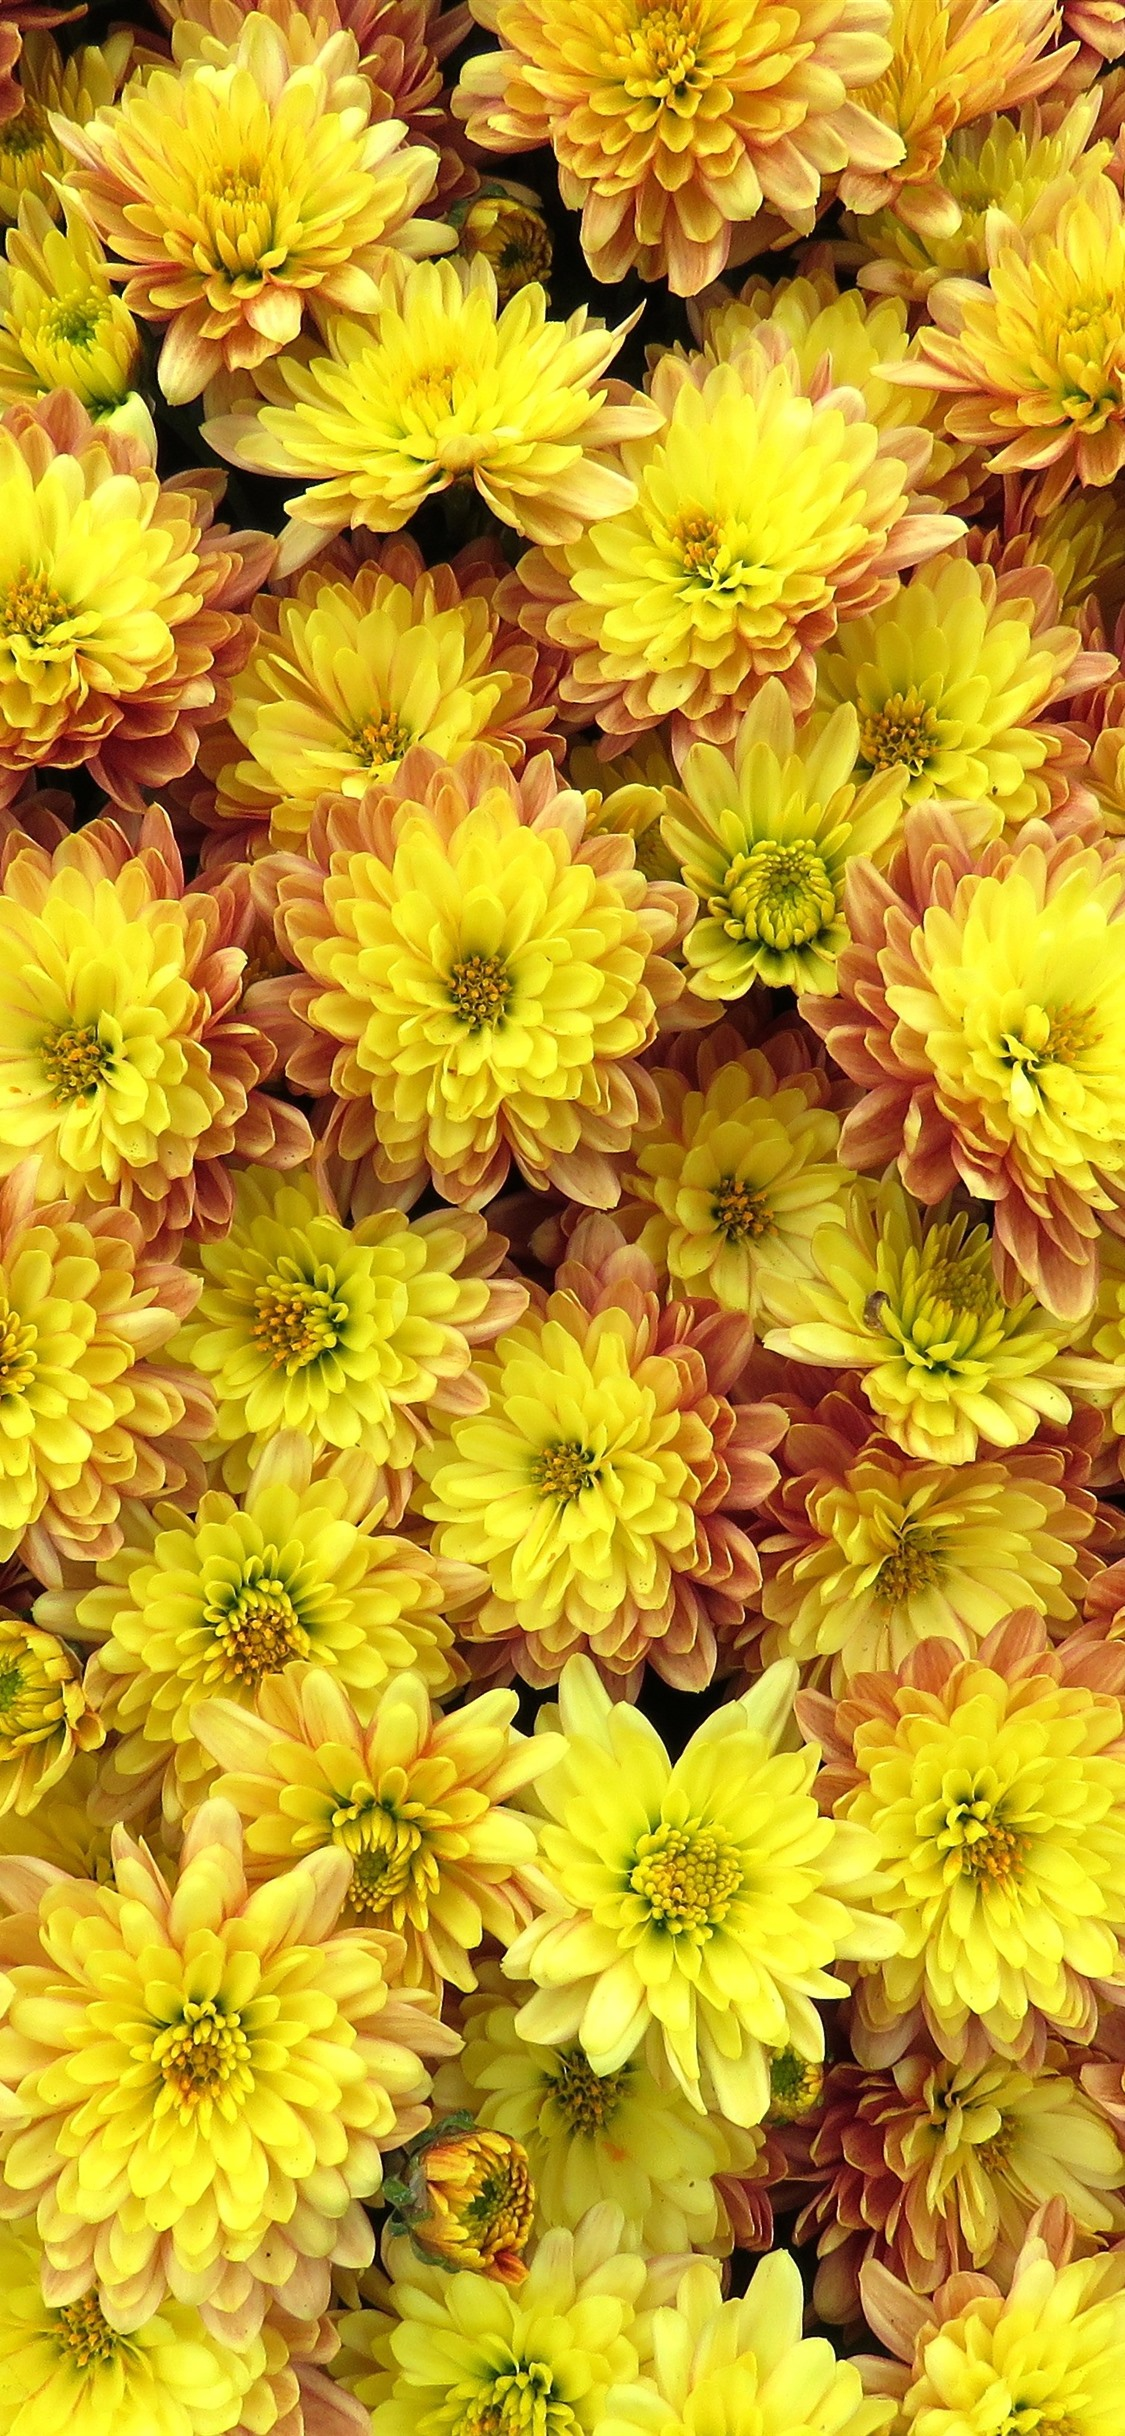 Many Yellow Flowers Dahlia 1242x2688 Iphone 11 Pro Xs Max Wallpaper Background Picture Image